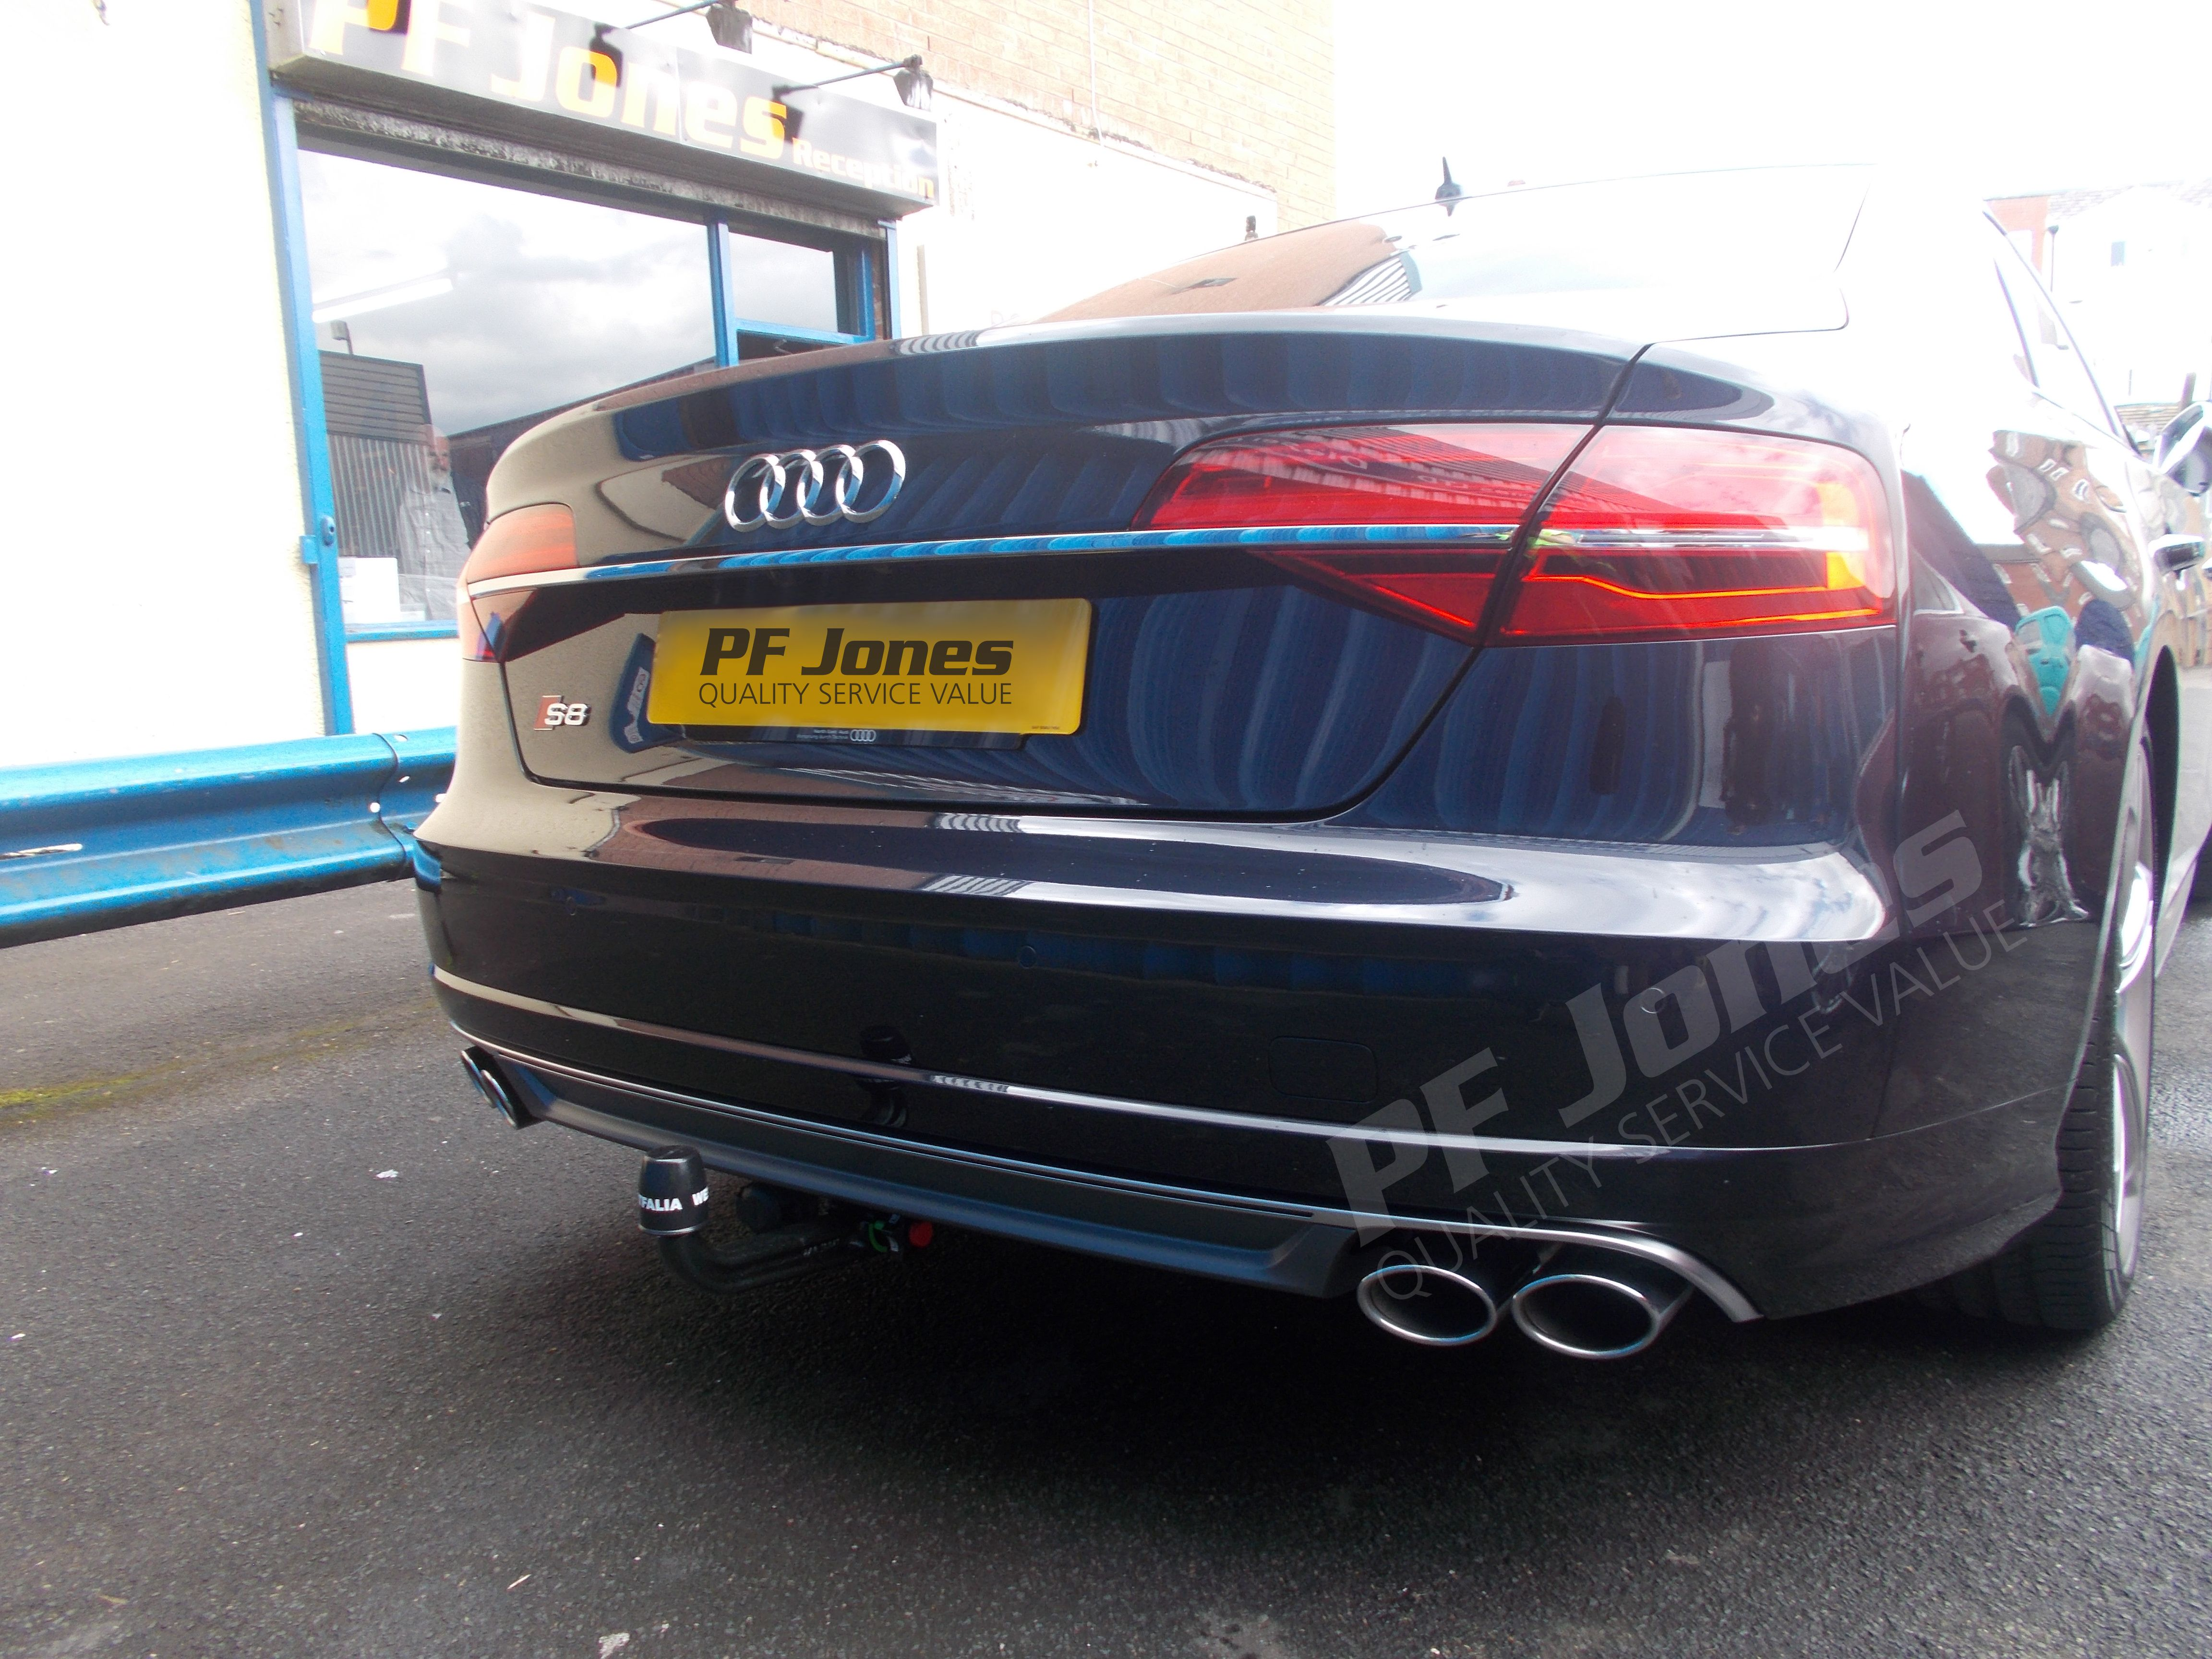 Audi s8 2016 fitted with a westfalia uk ltd swan neck detachable audi s8 2016 fitted with a westfalia uk ltd swan neck detachable towbar 305384 at pf jones publicscrutiny Gallery